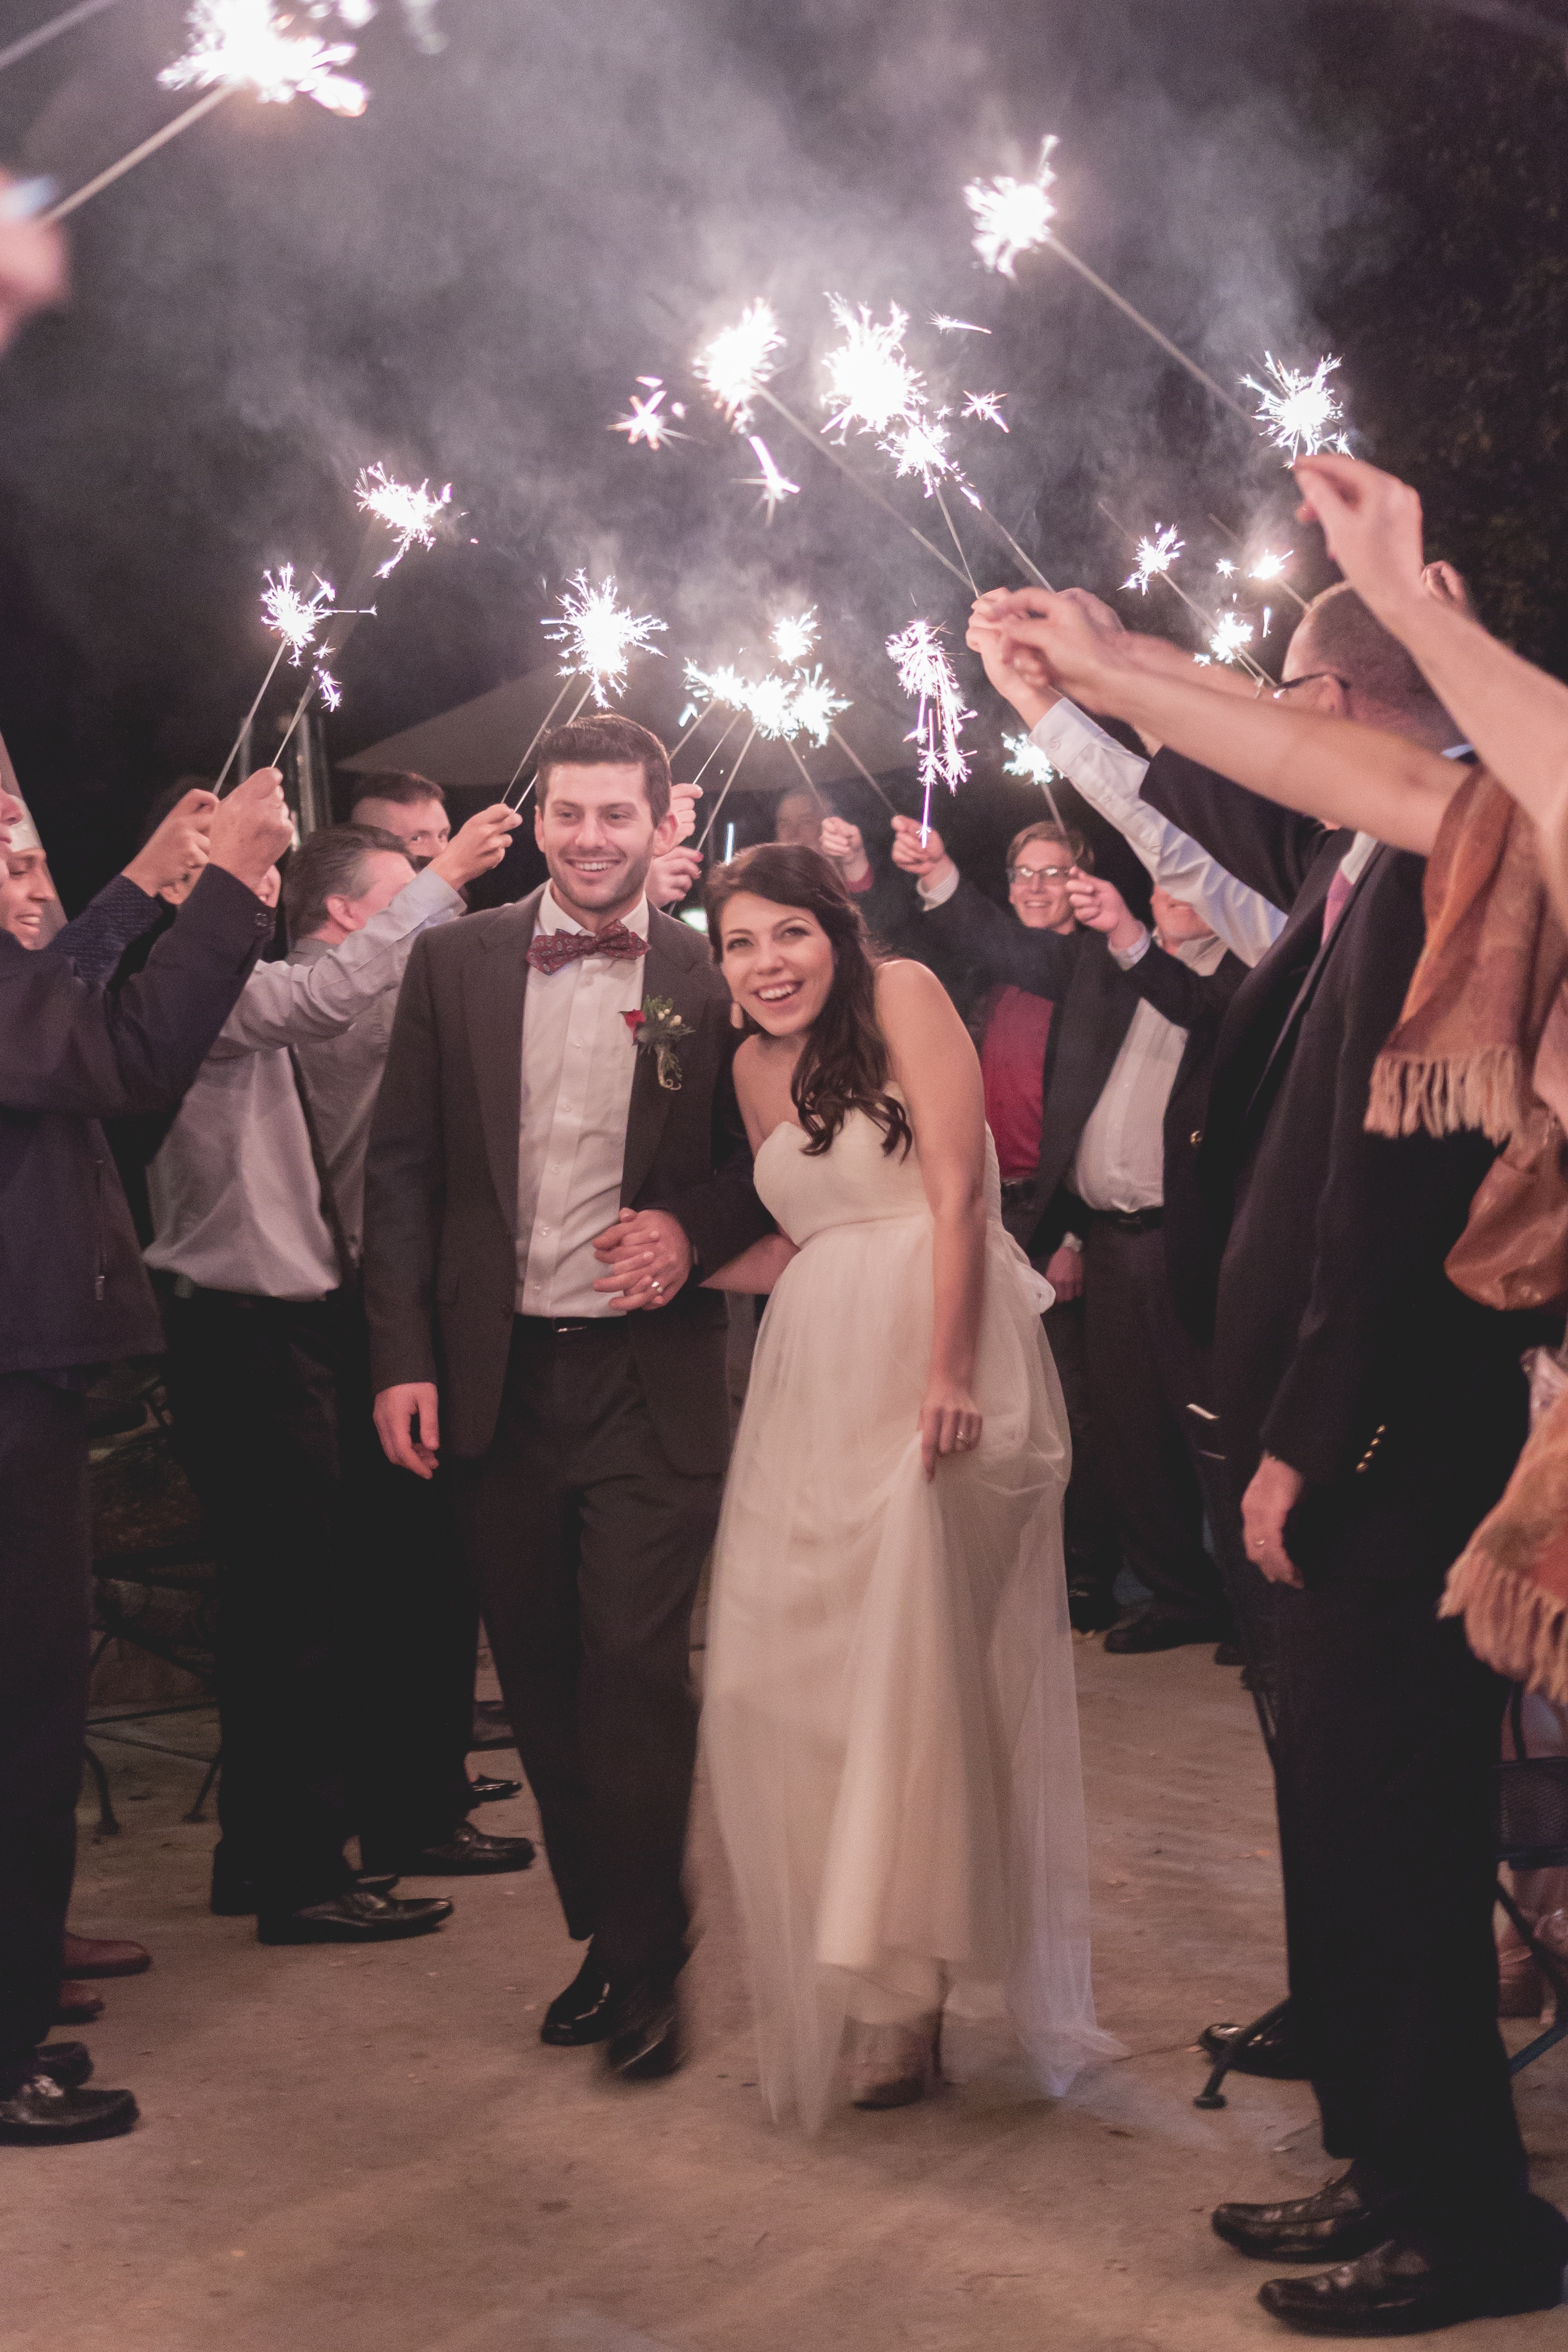 10 Inch 20 Or 36 Wedding Sparklers Which One Is Right For Me